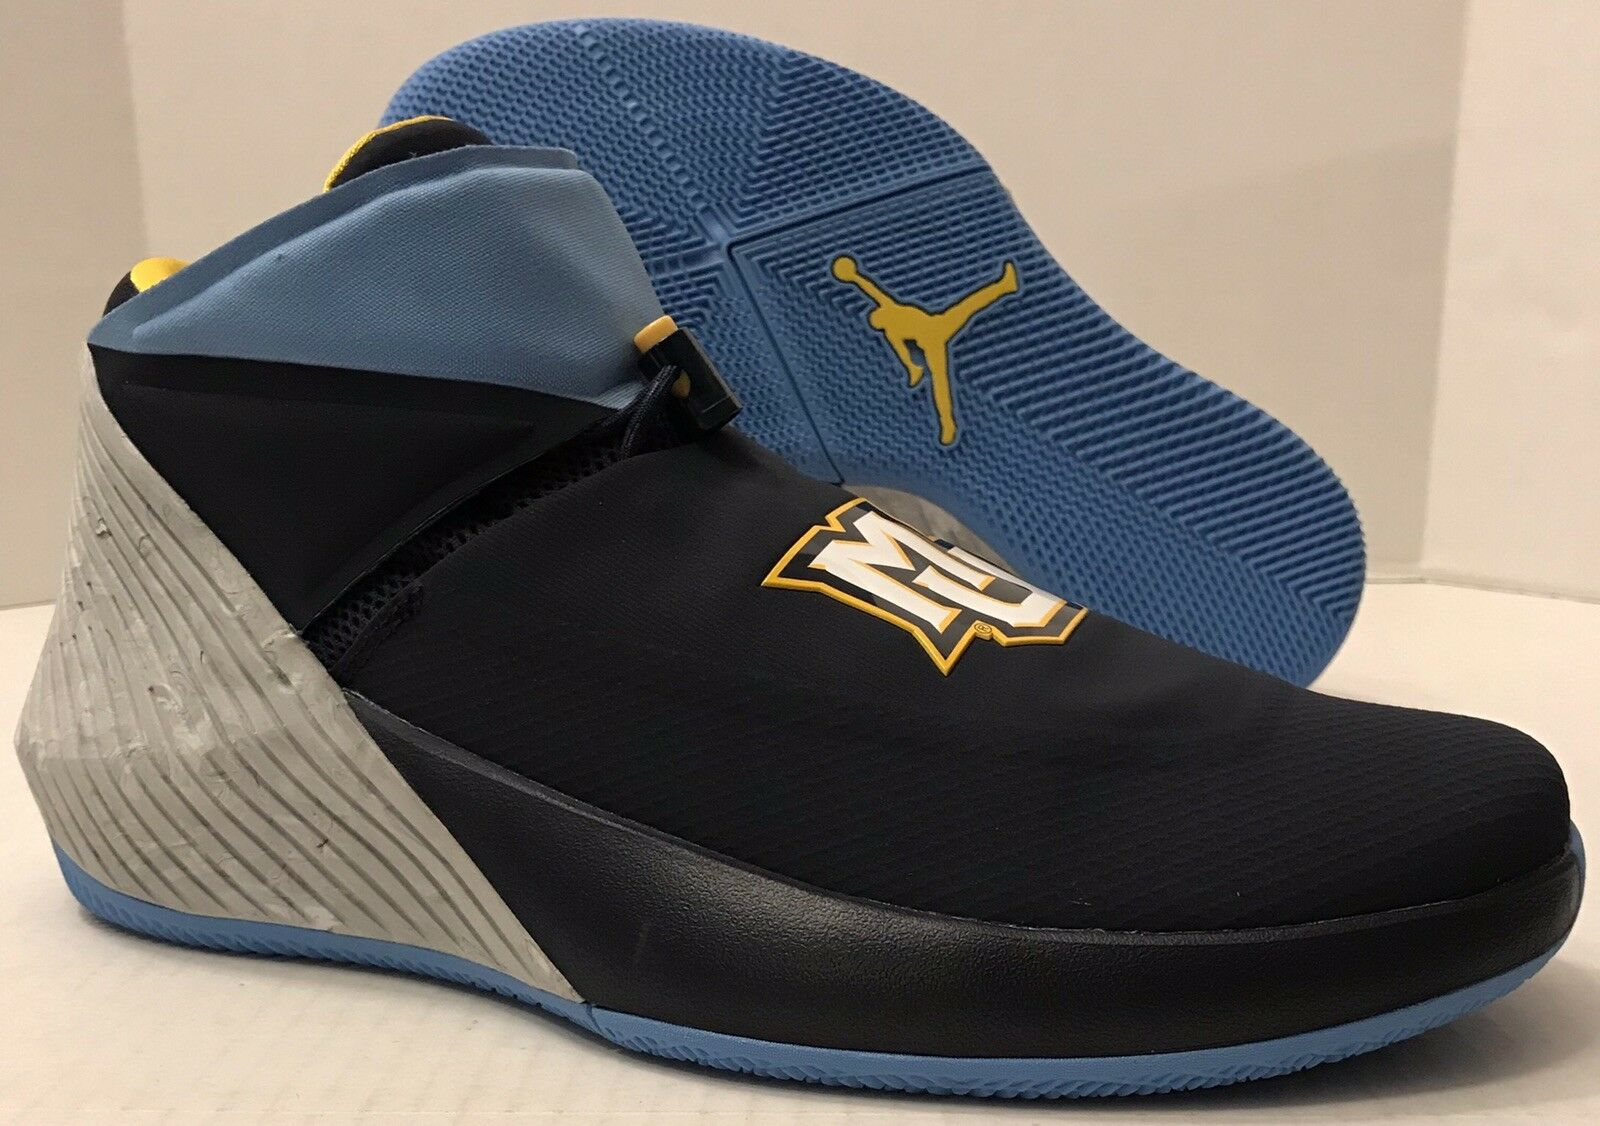 NIKE AIR JORDAN WHY NOT ZER0.1  MARQUETTE  AA2510-403 bluee (MEN'S 12.5) NO BOX